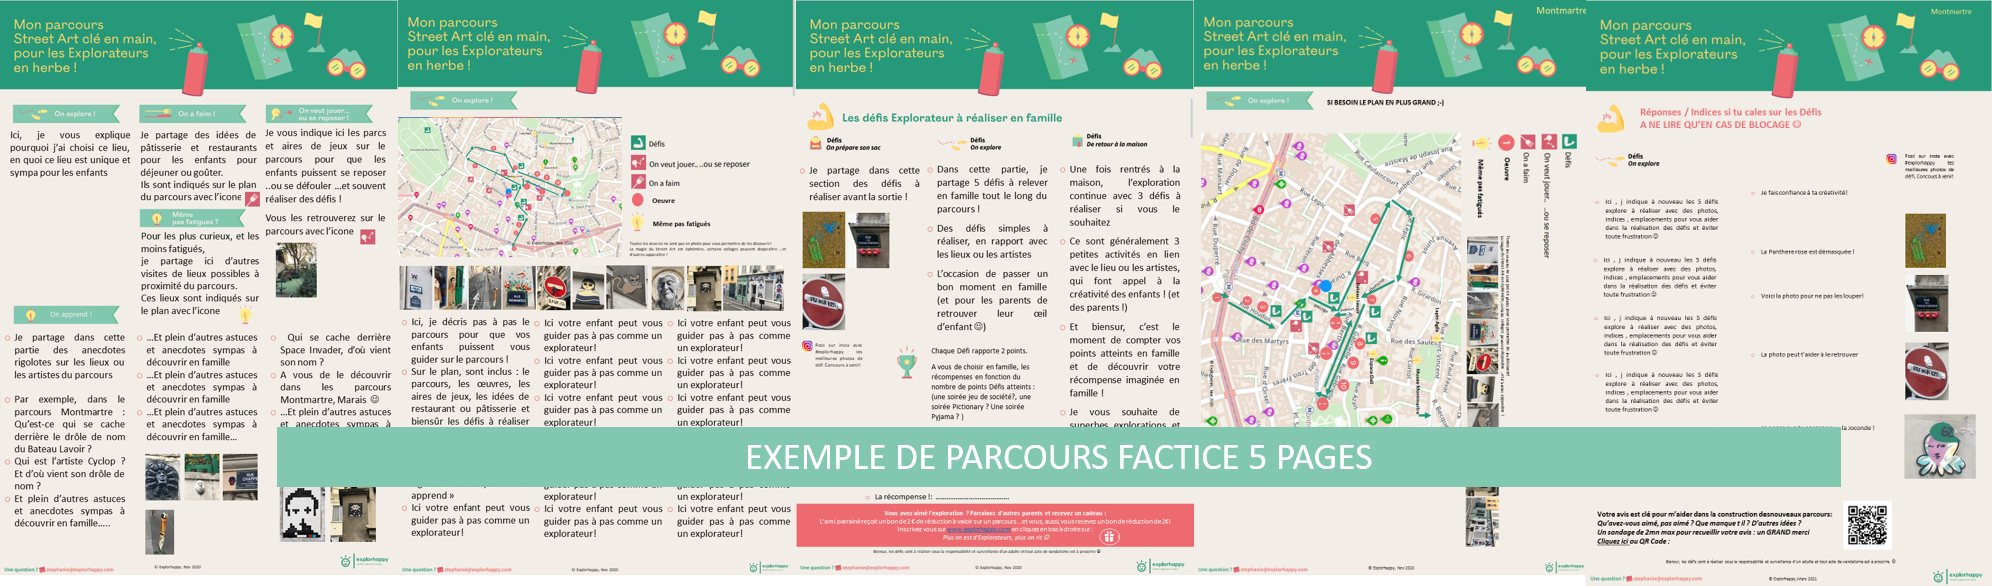 parcours factice explorhappy